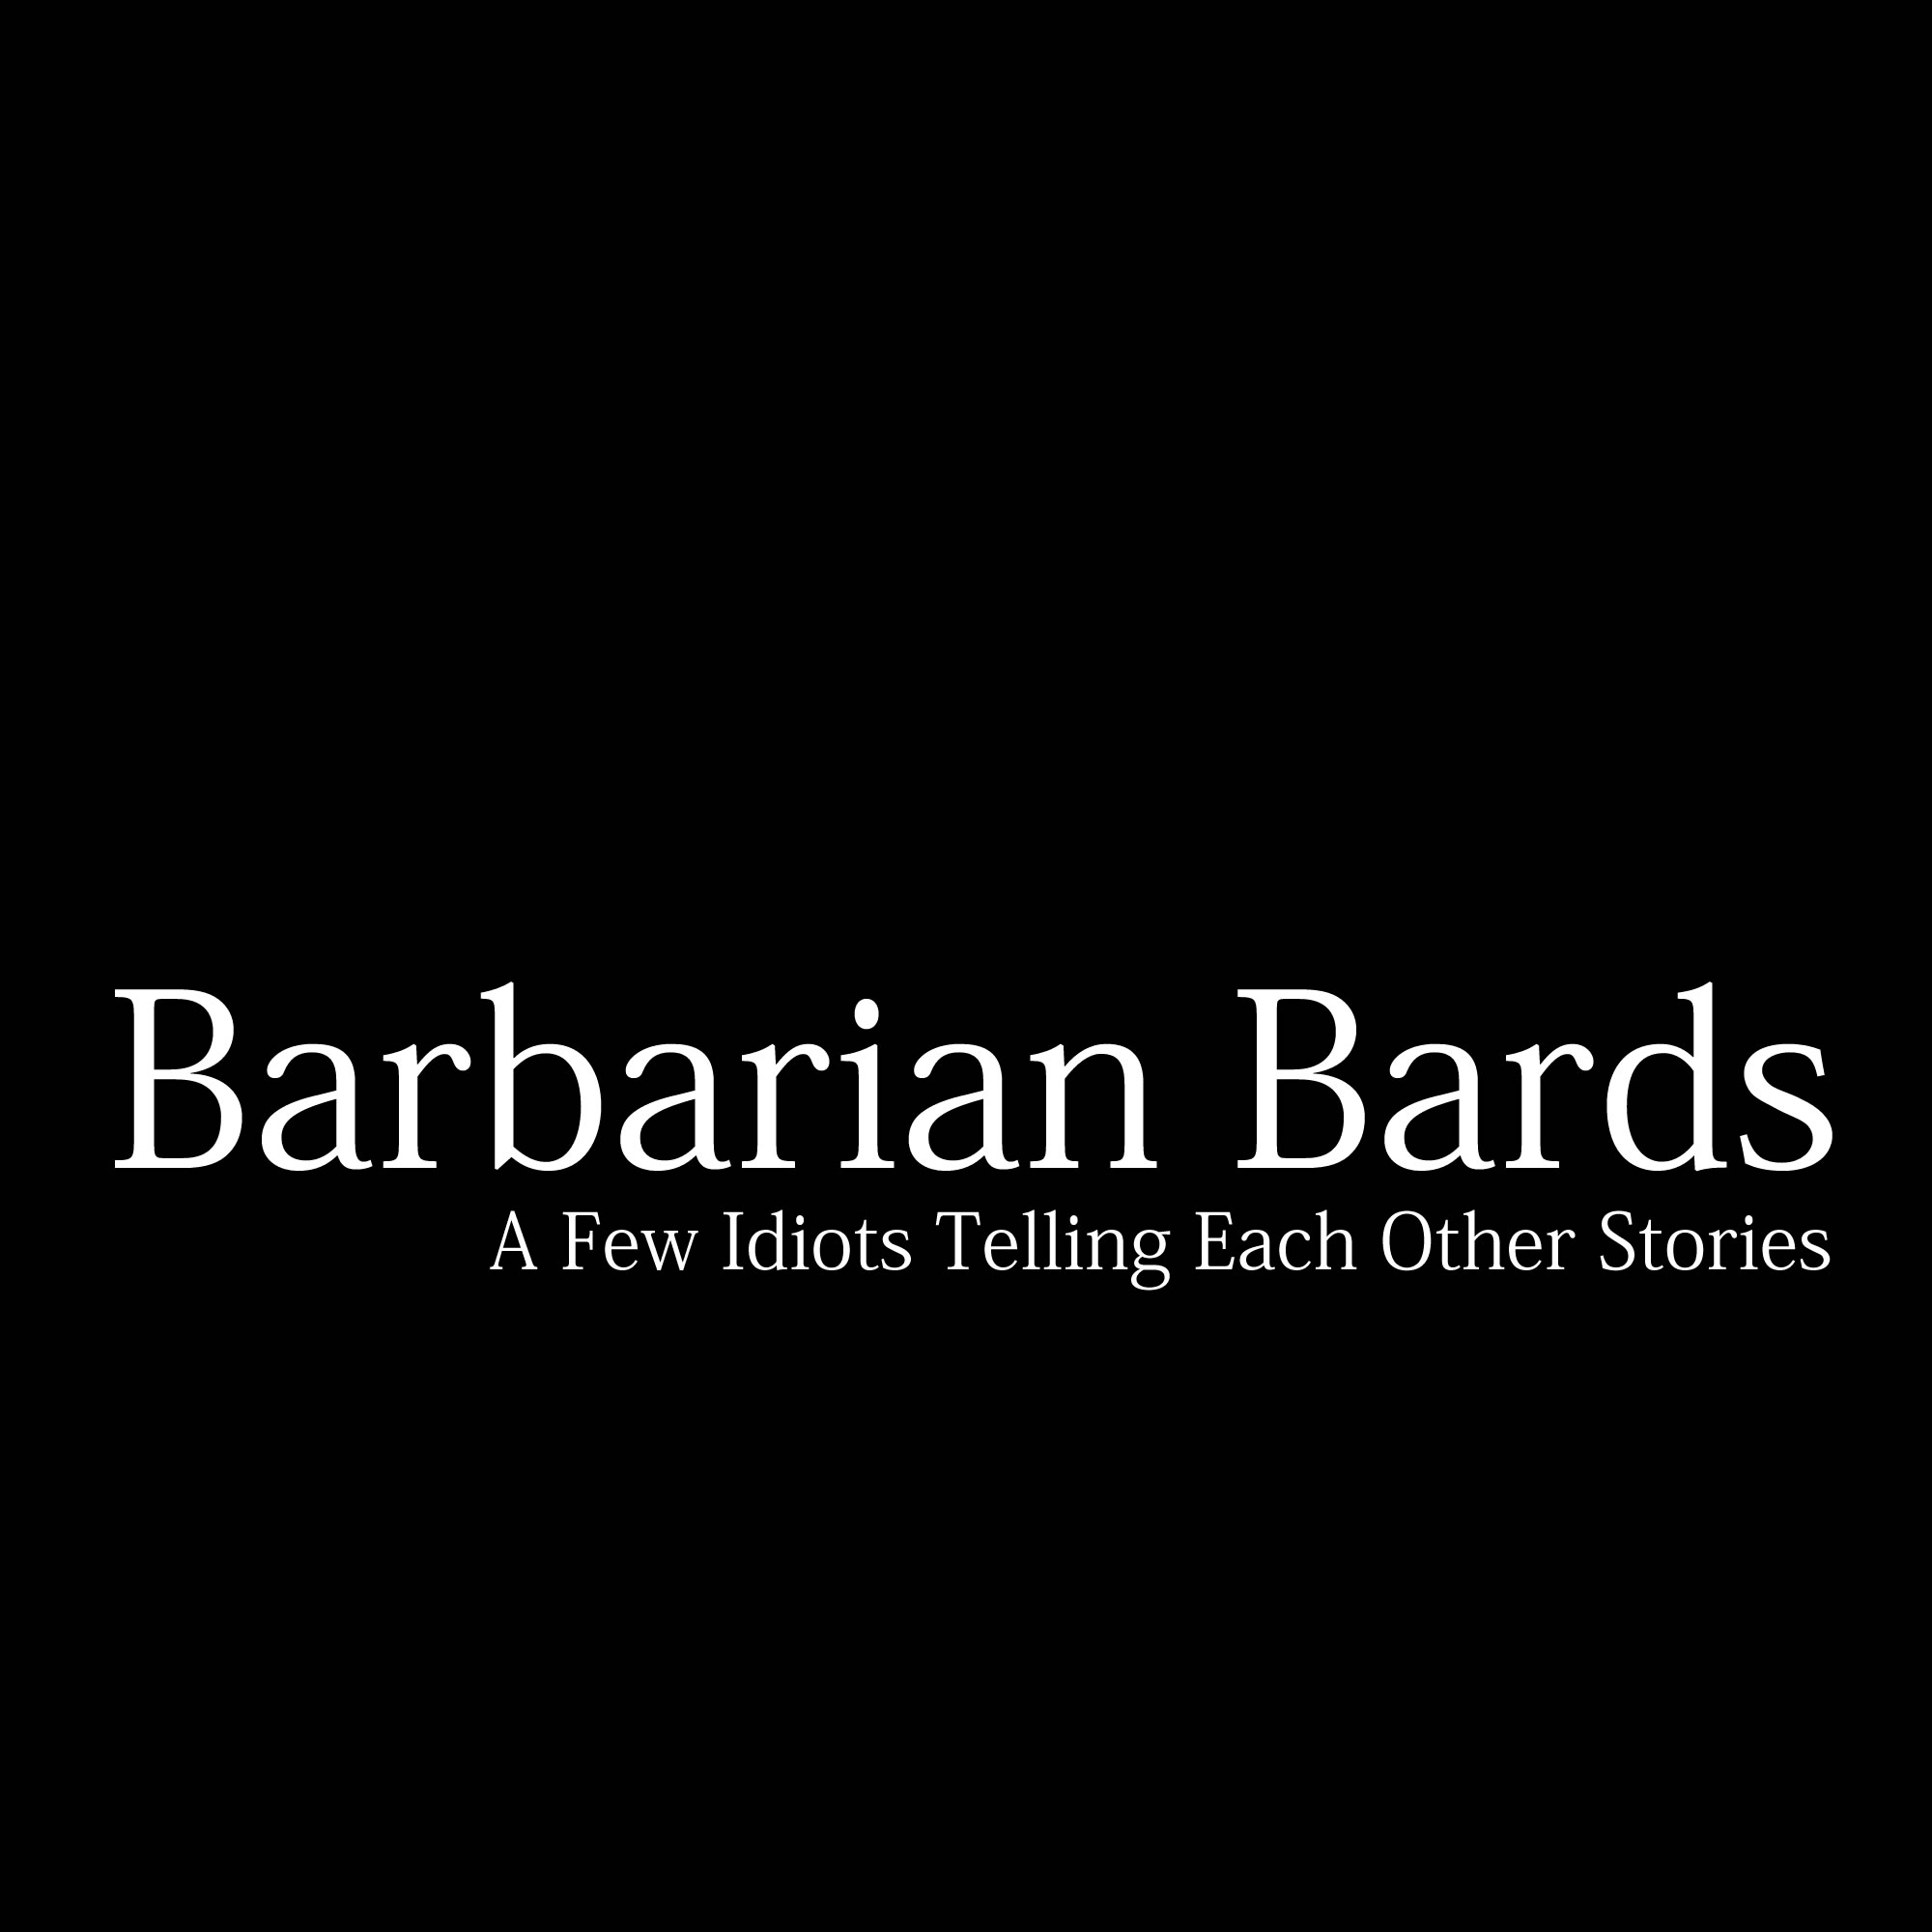 Barbarian Bards